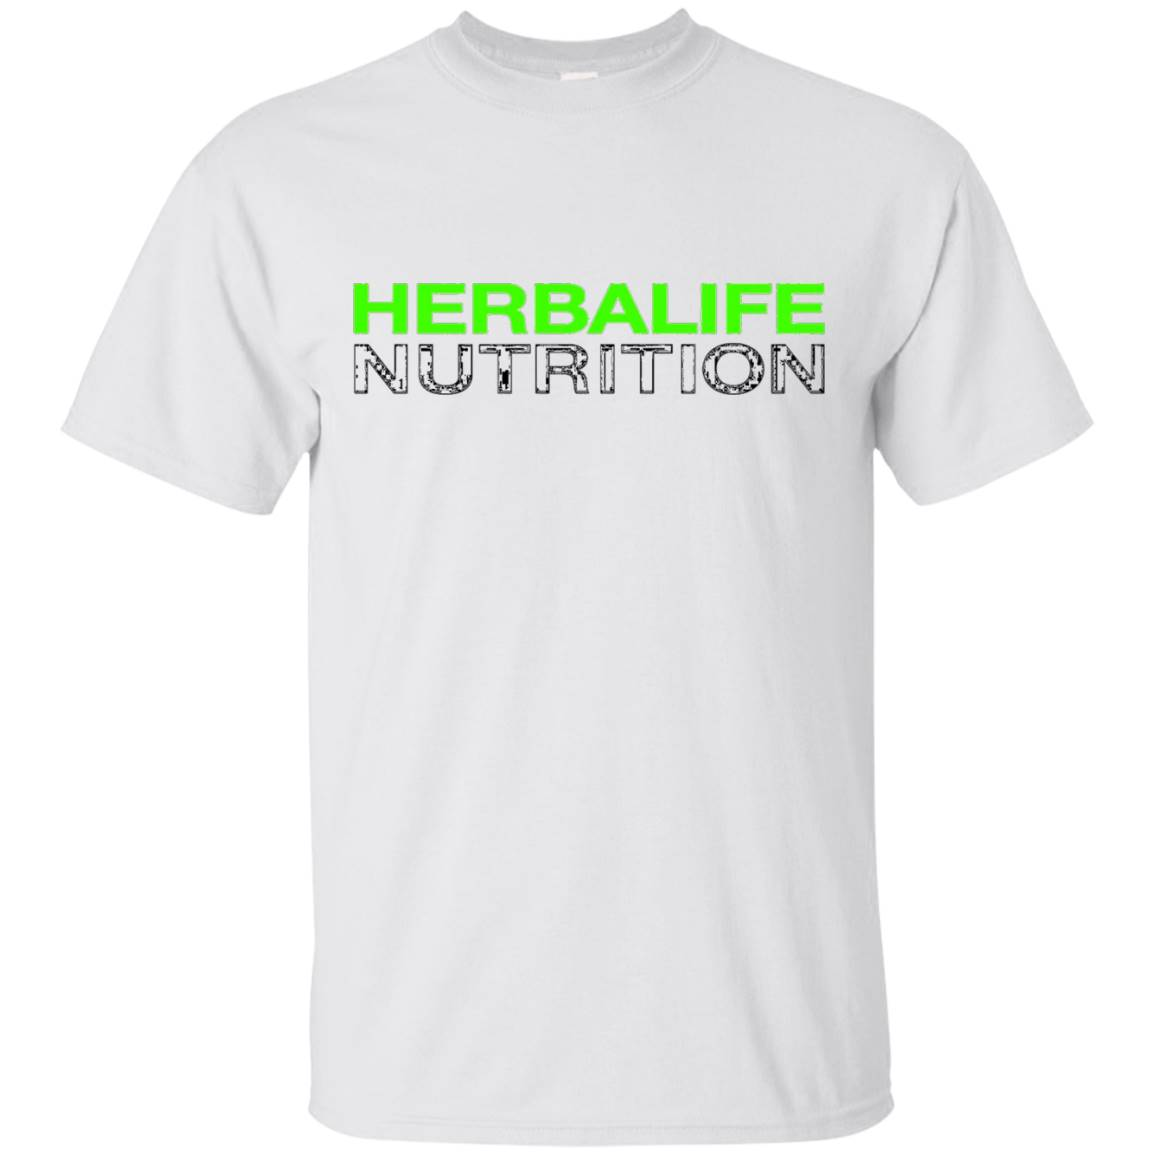 HERBALIFE NUTRITION T-SHIRT – NEON BLACK DESIGN – T-Shirt